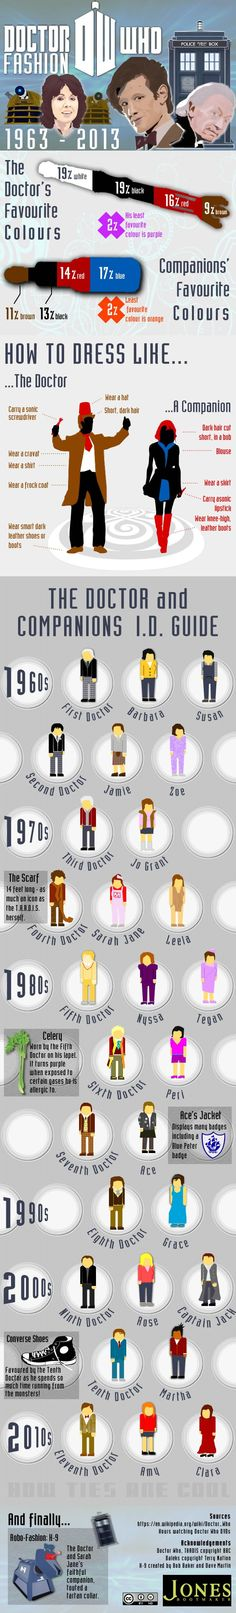 Comprehensive 'Doctor Who' Fashion Guide: 1963 - 2013 #doctorwho #infographic #classicwho